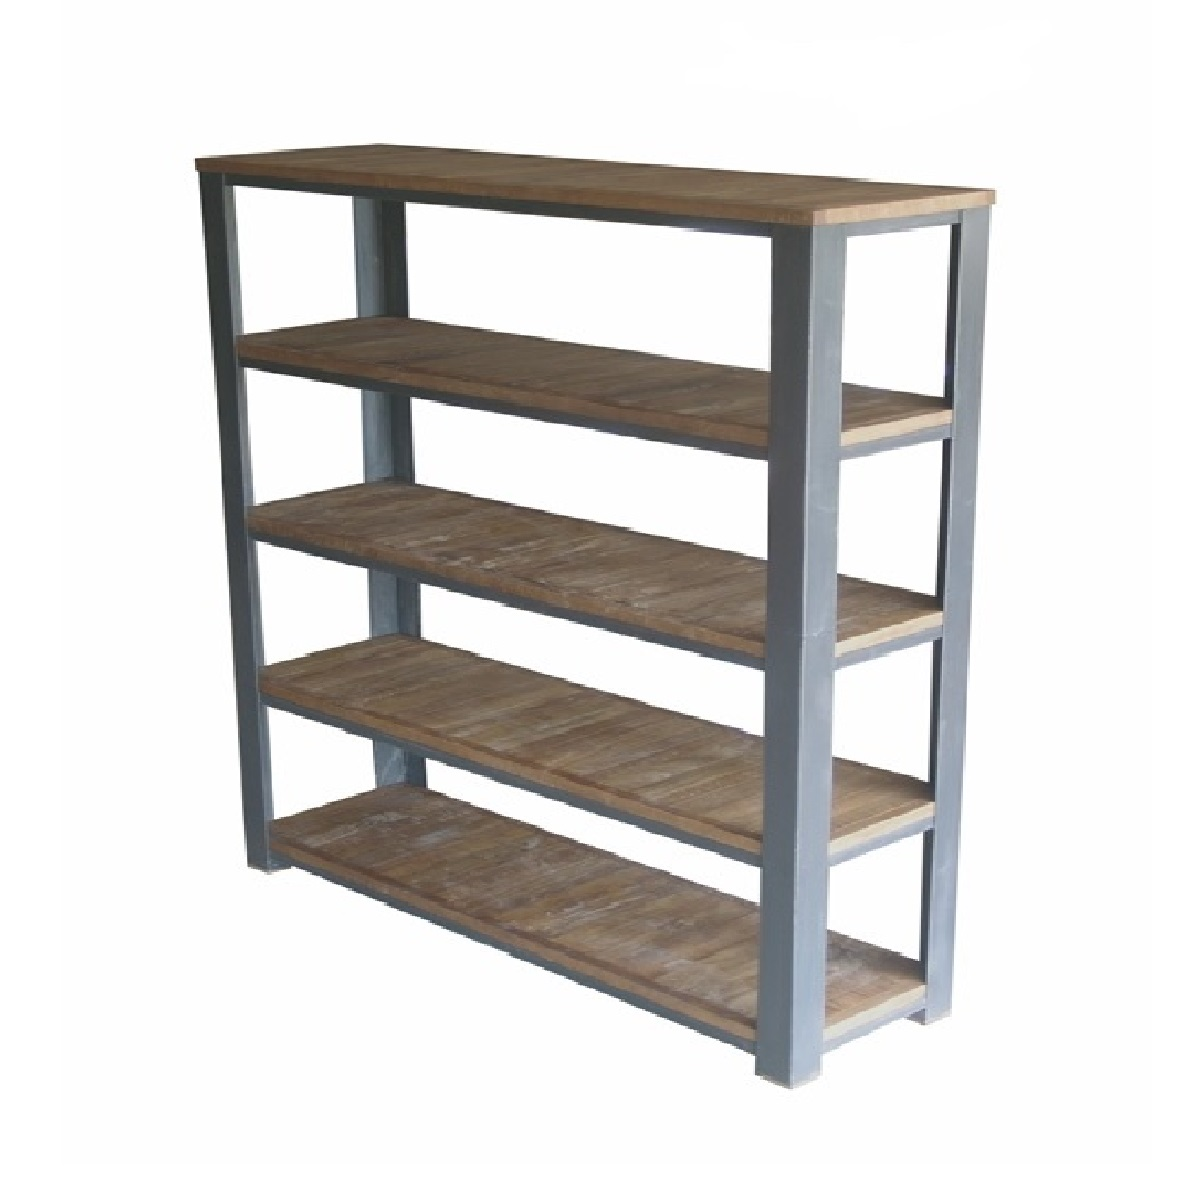 Shelving / Storage